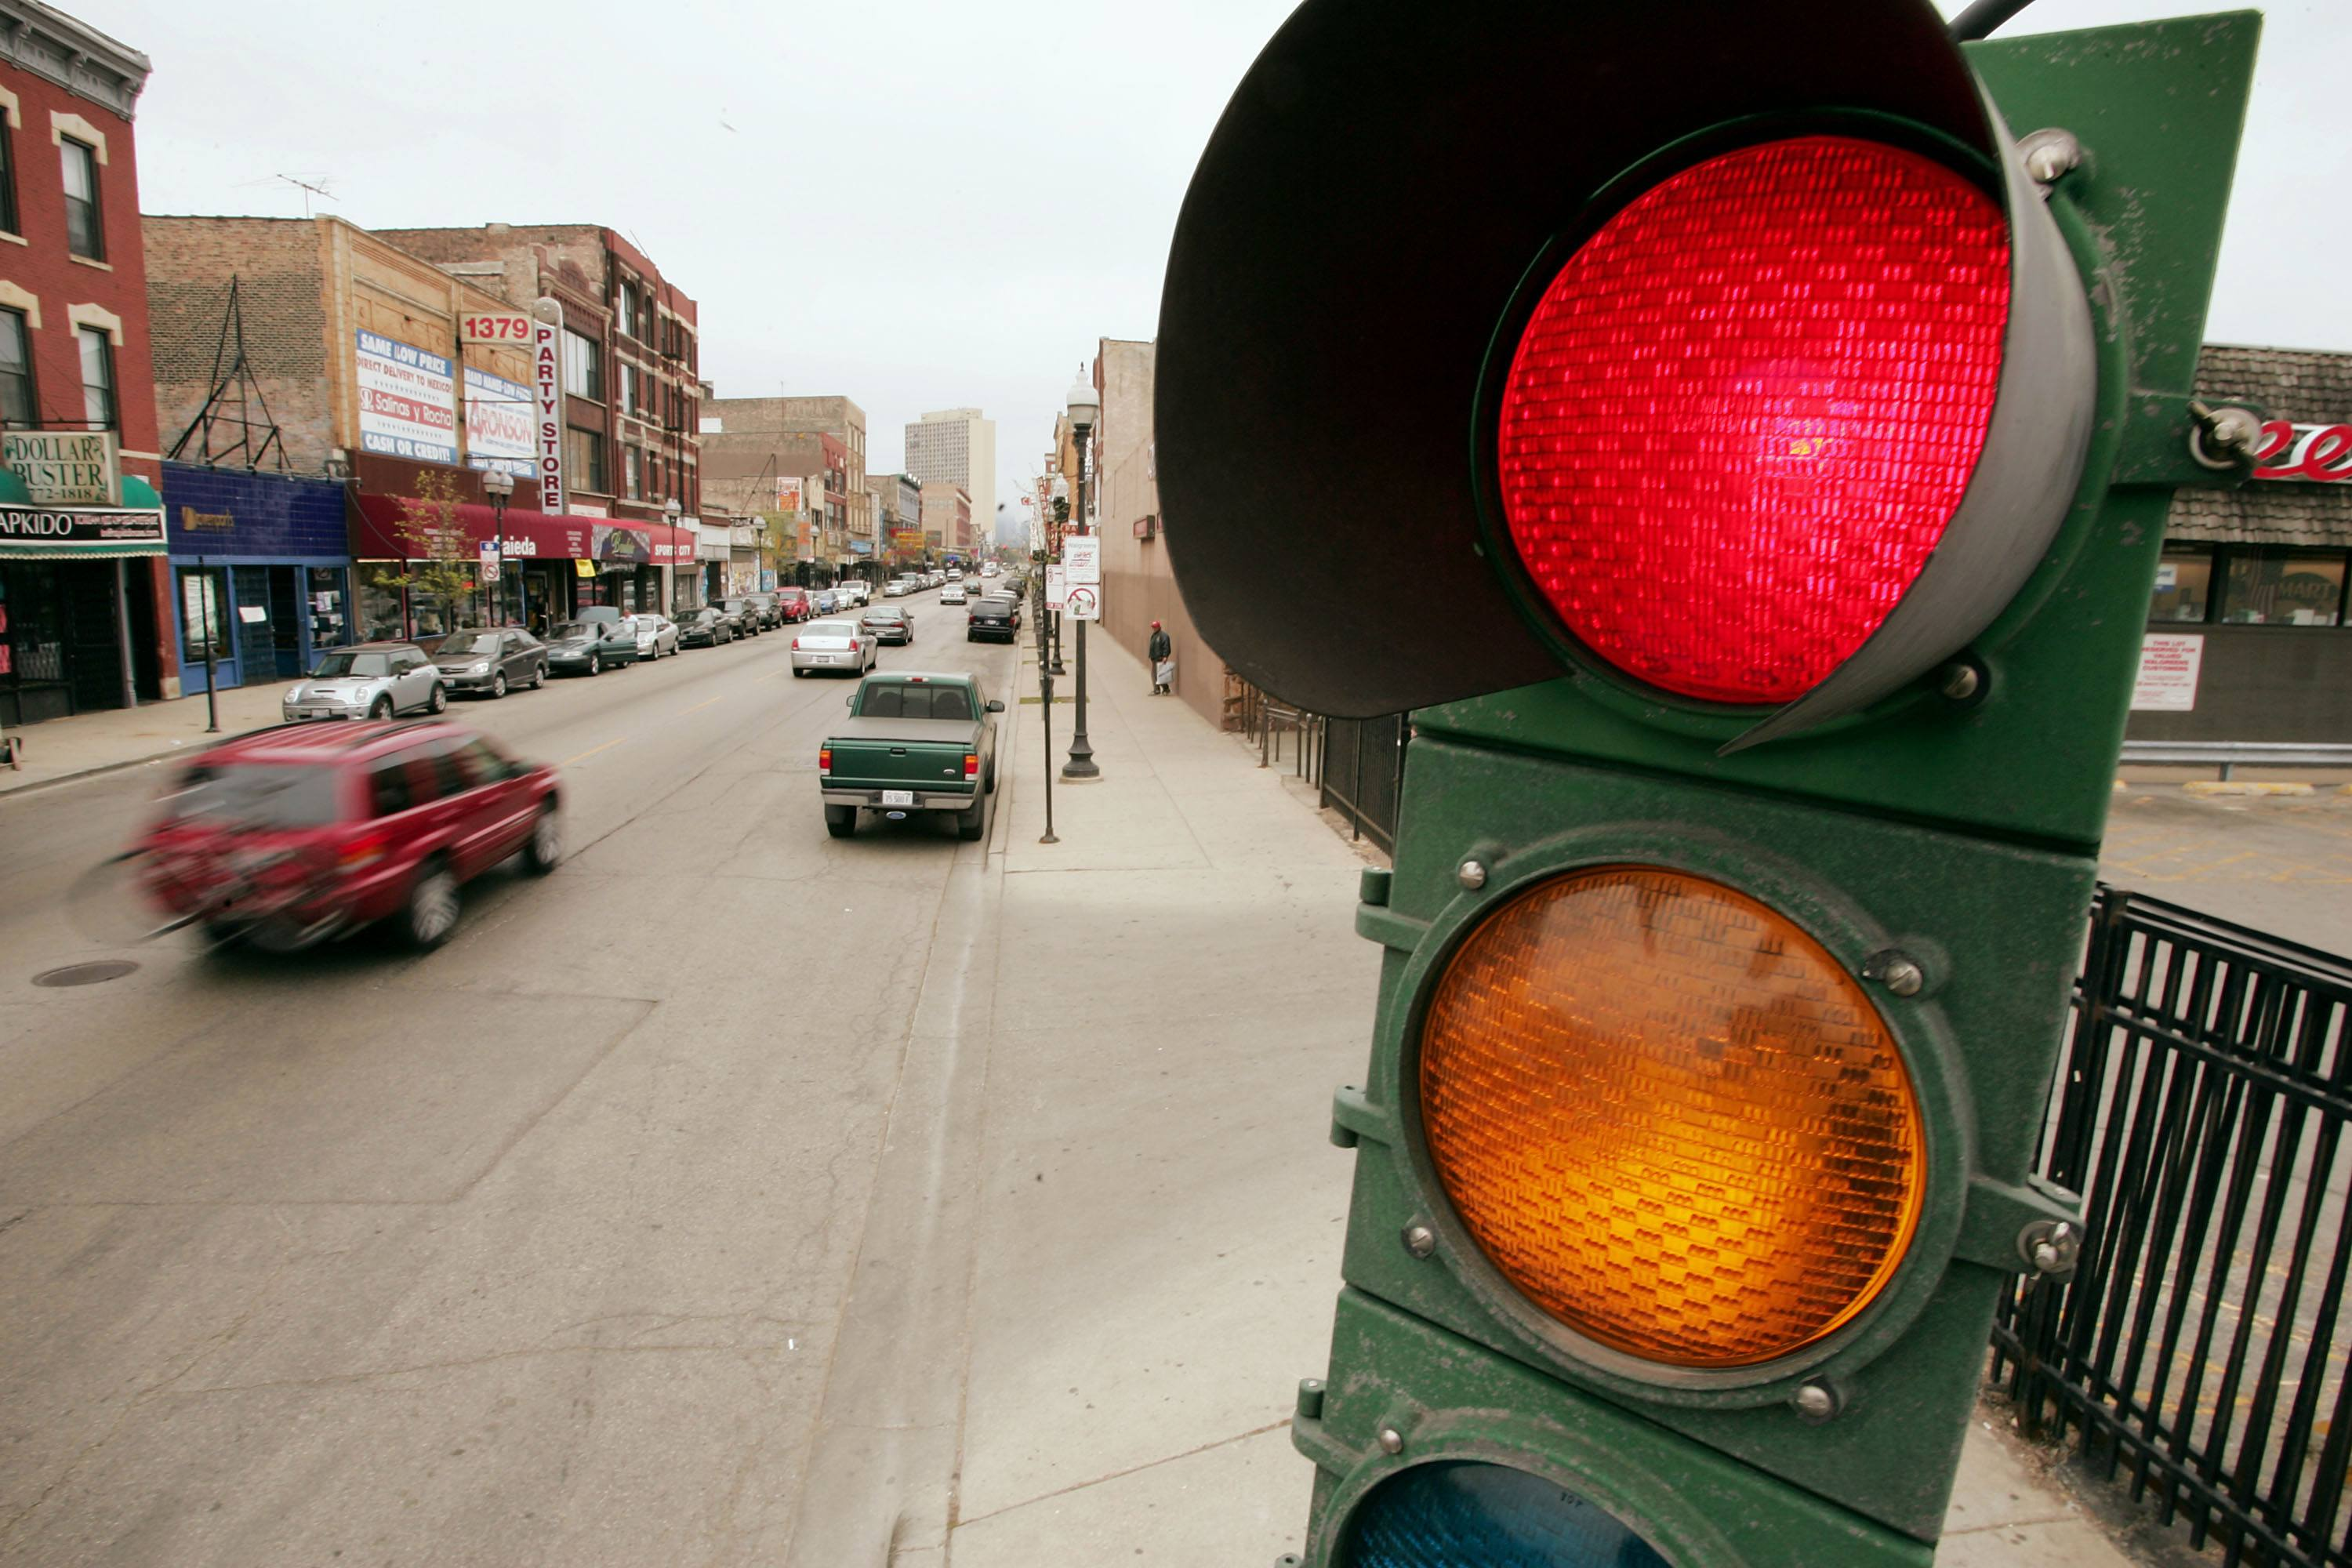 Red light stops traffic in Chicago